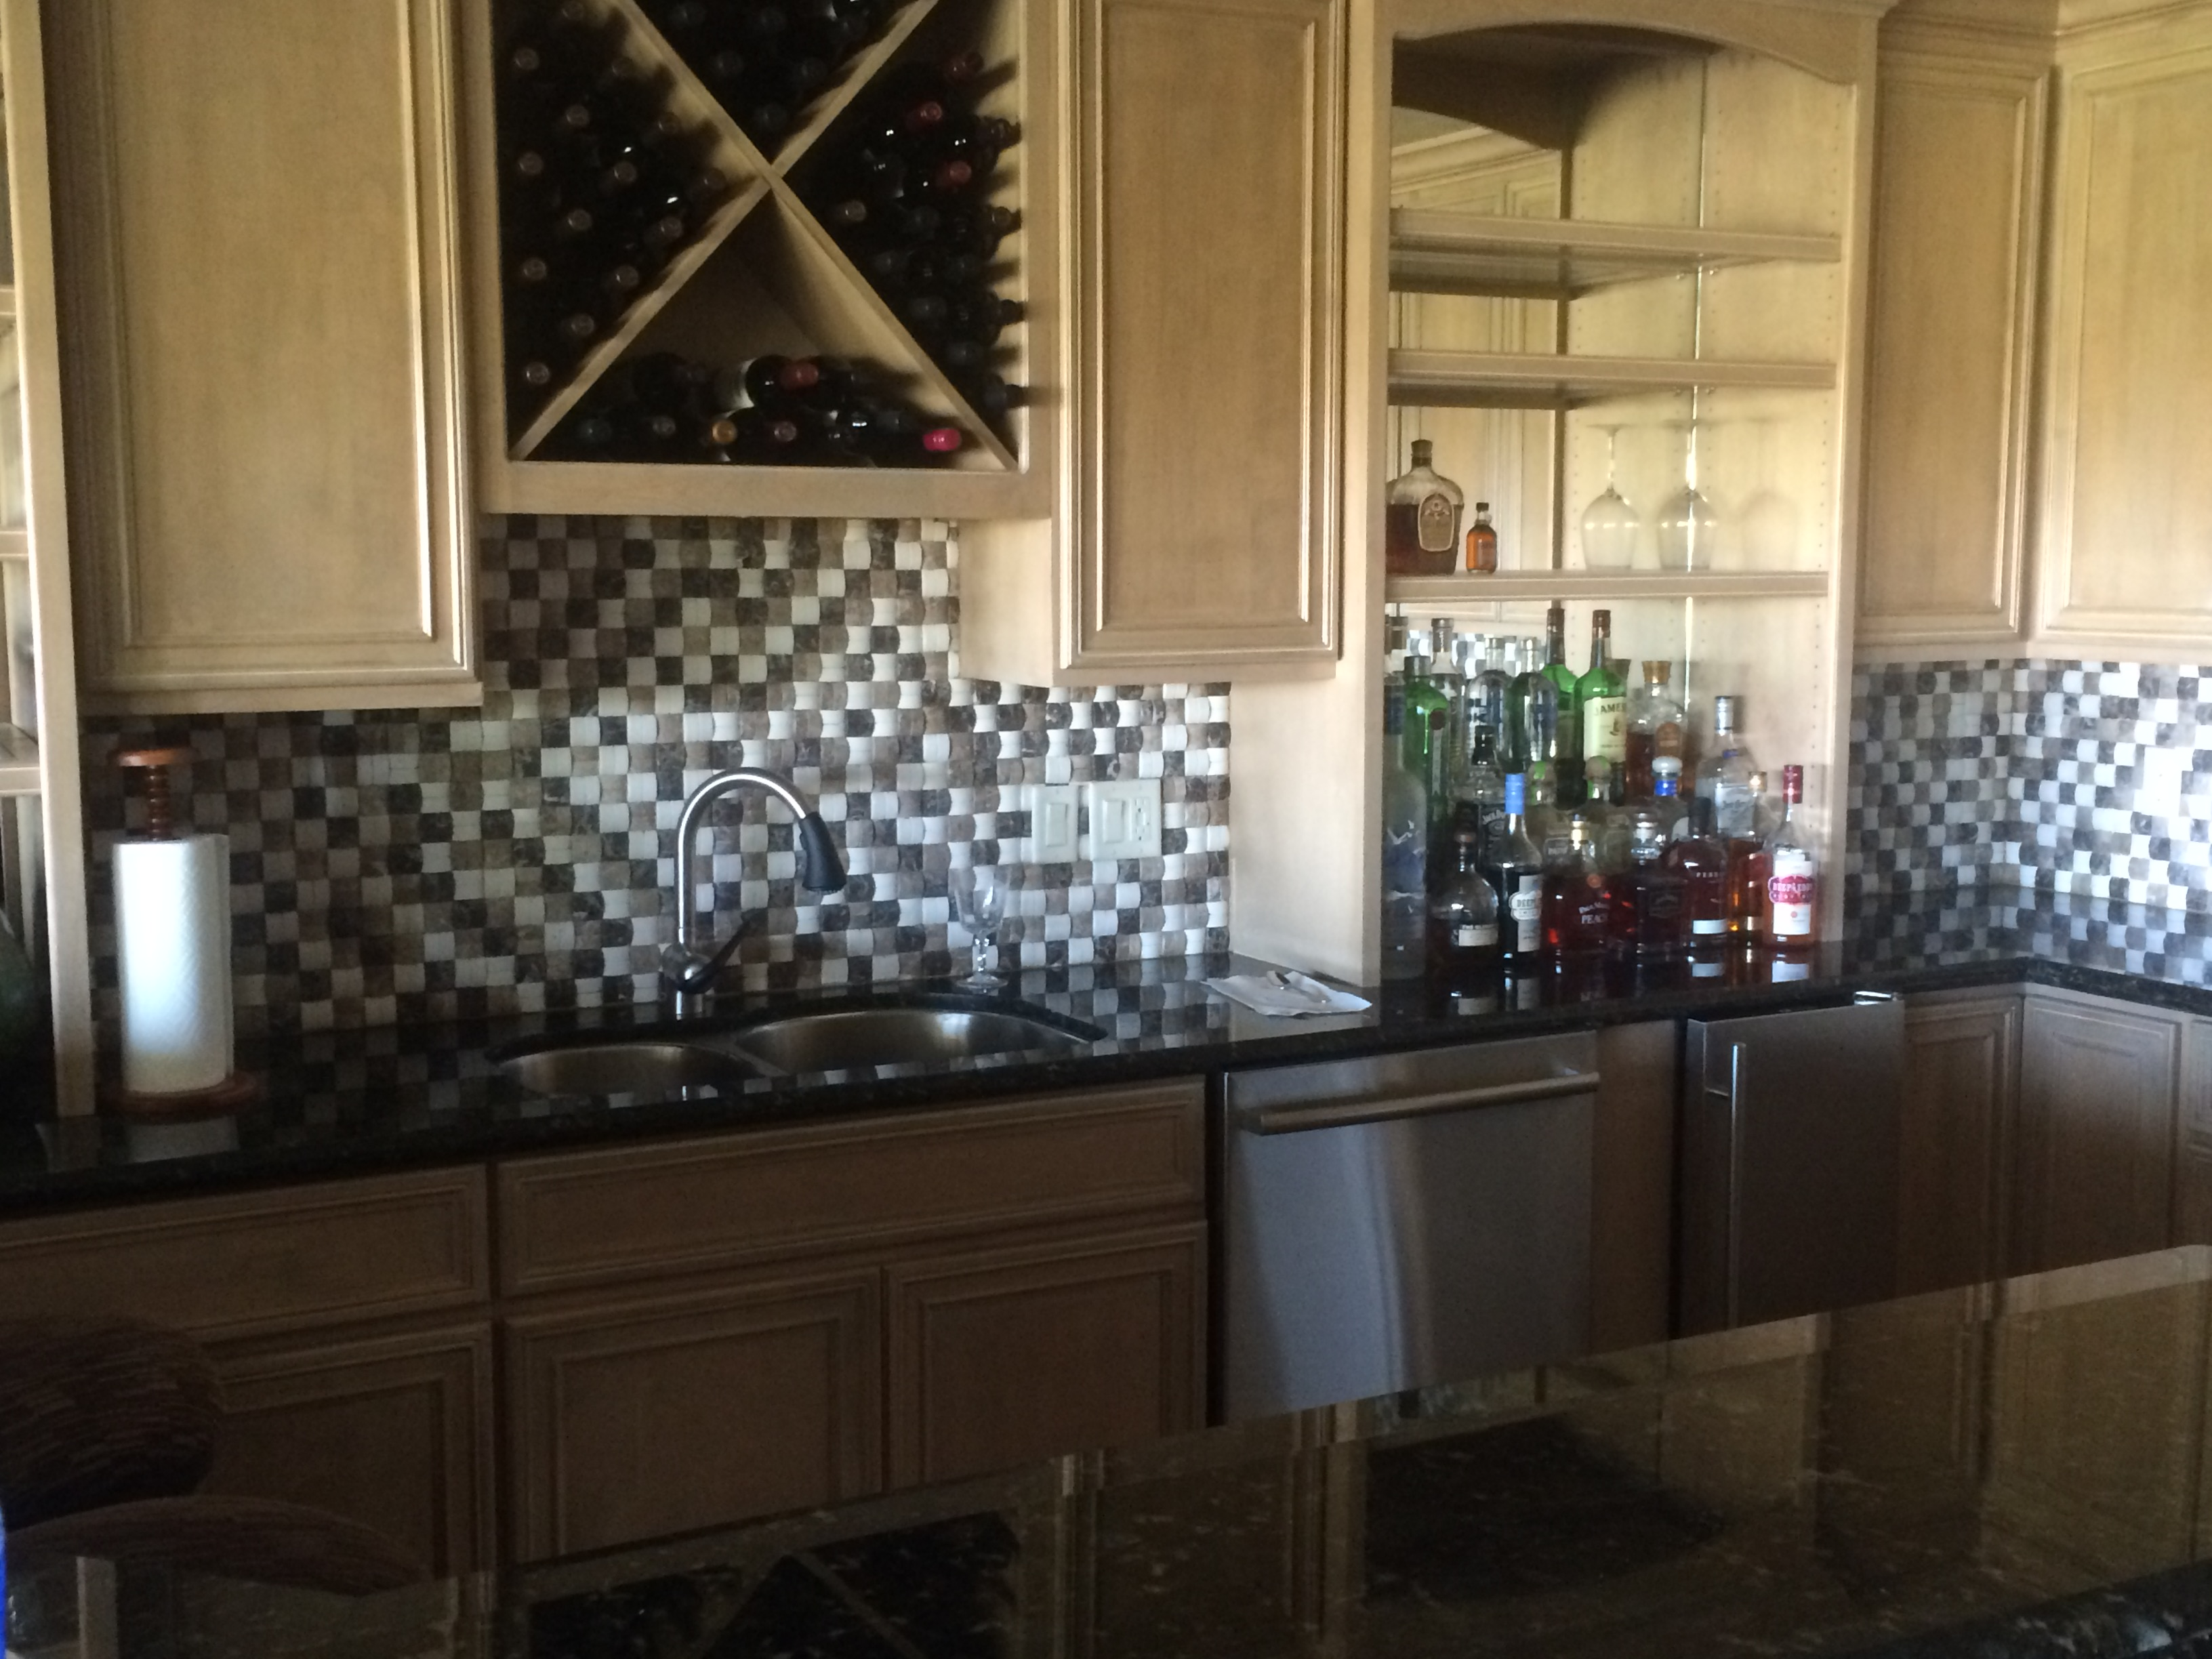 Contrasting square tile backsplash